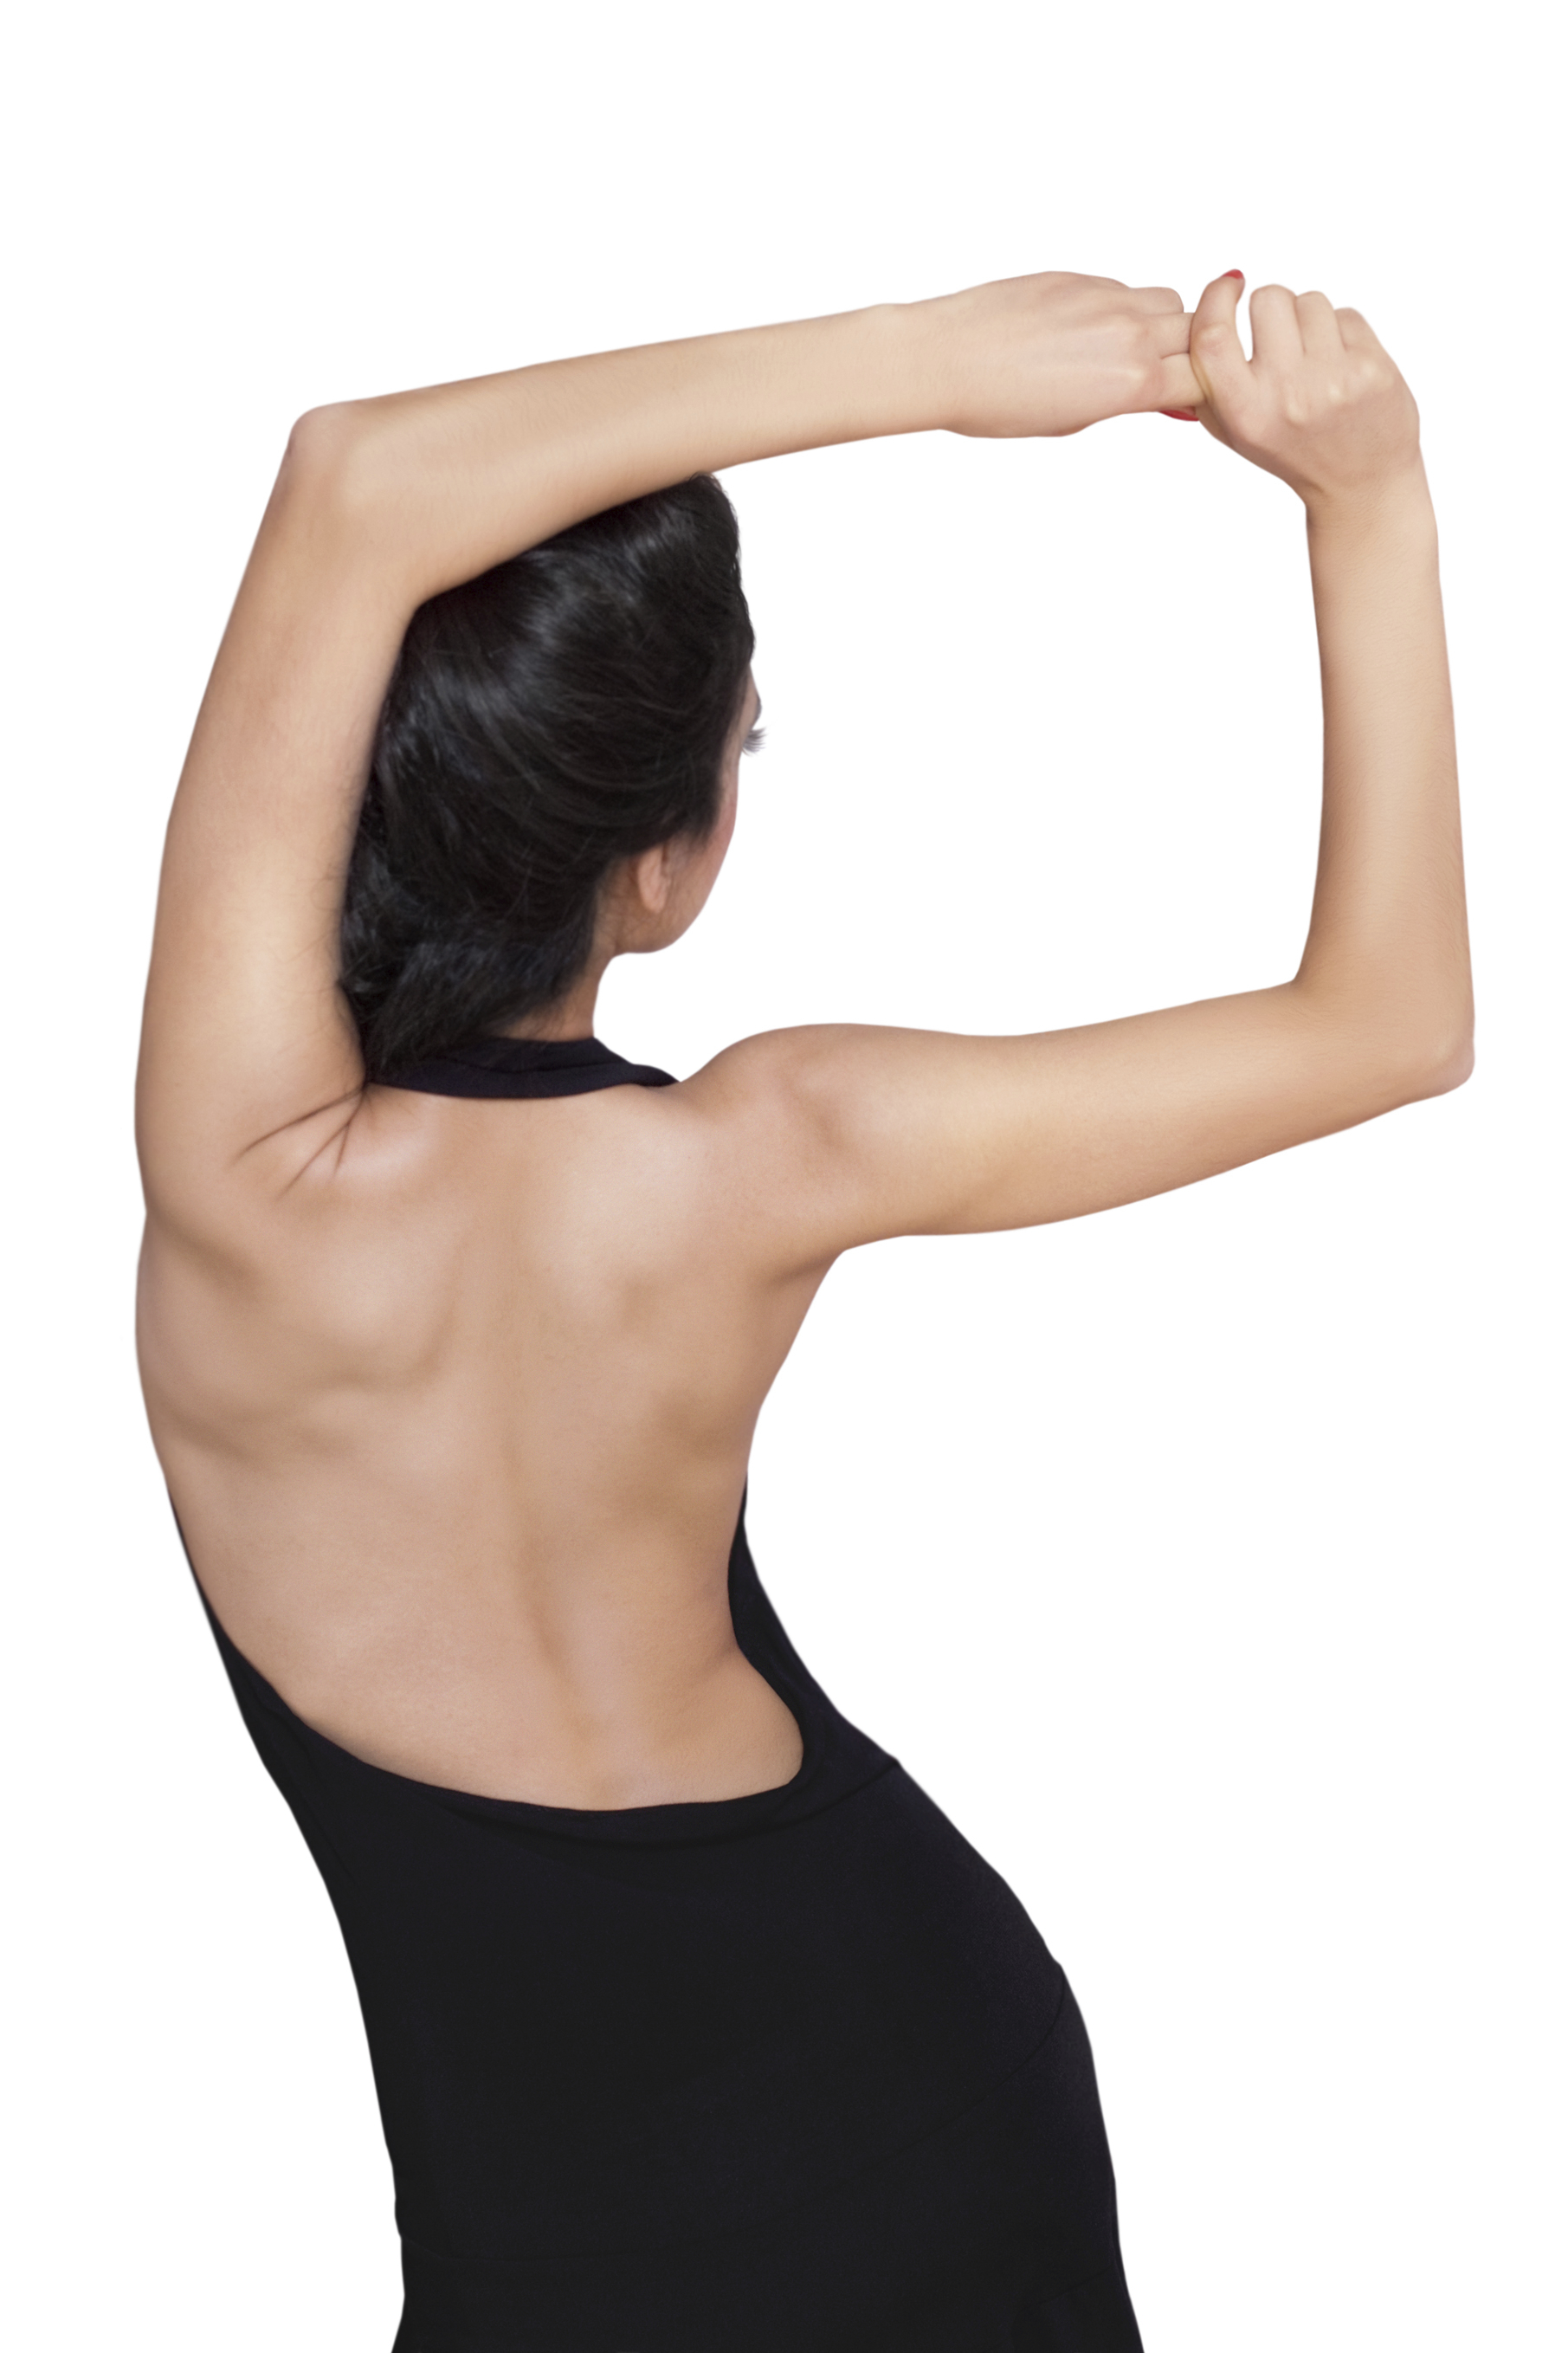 8 Simple Exercises = Beautiful, Shapely Arms